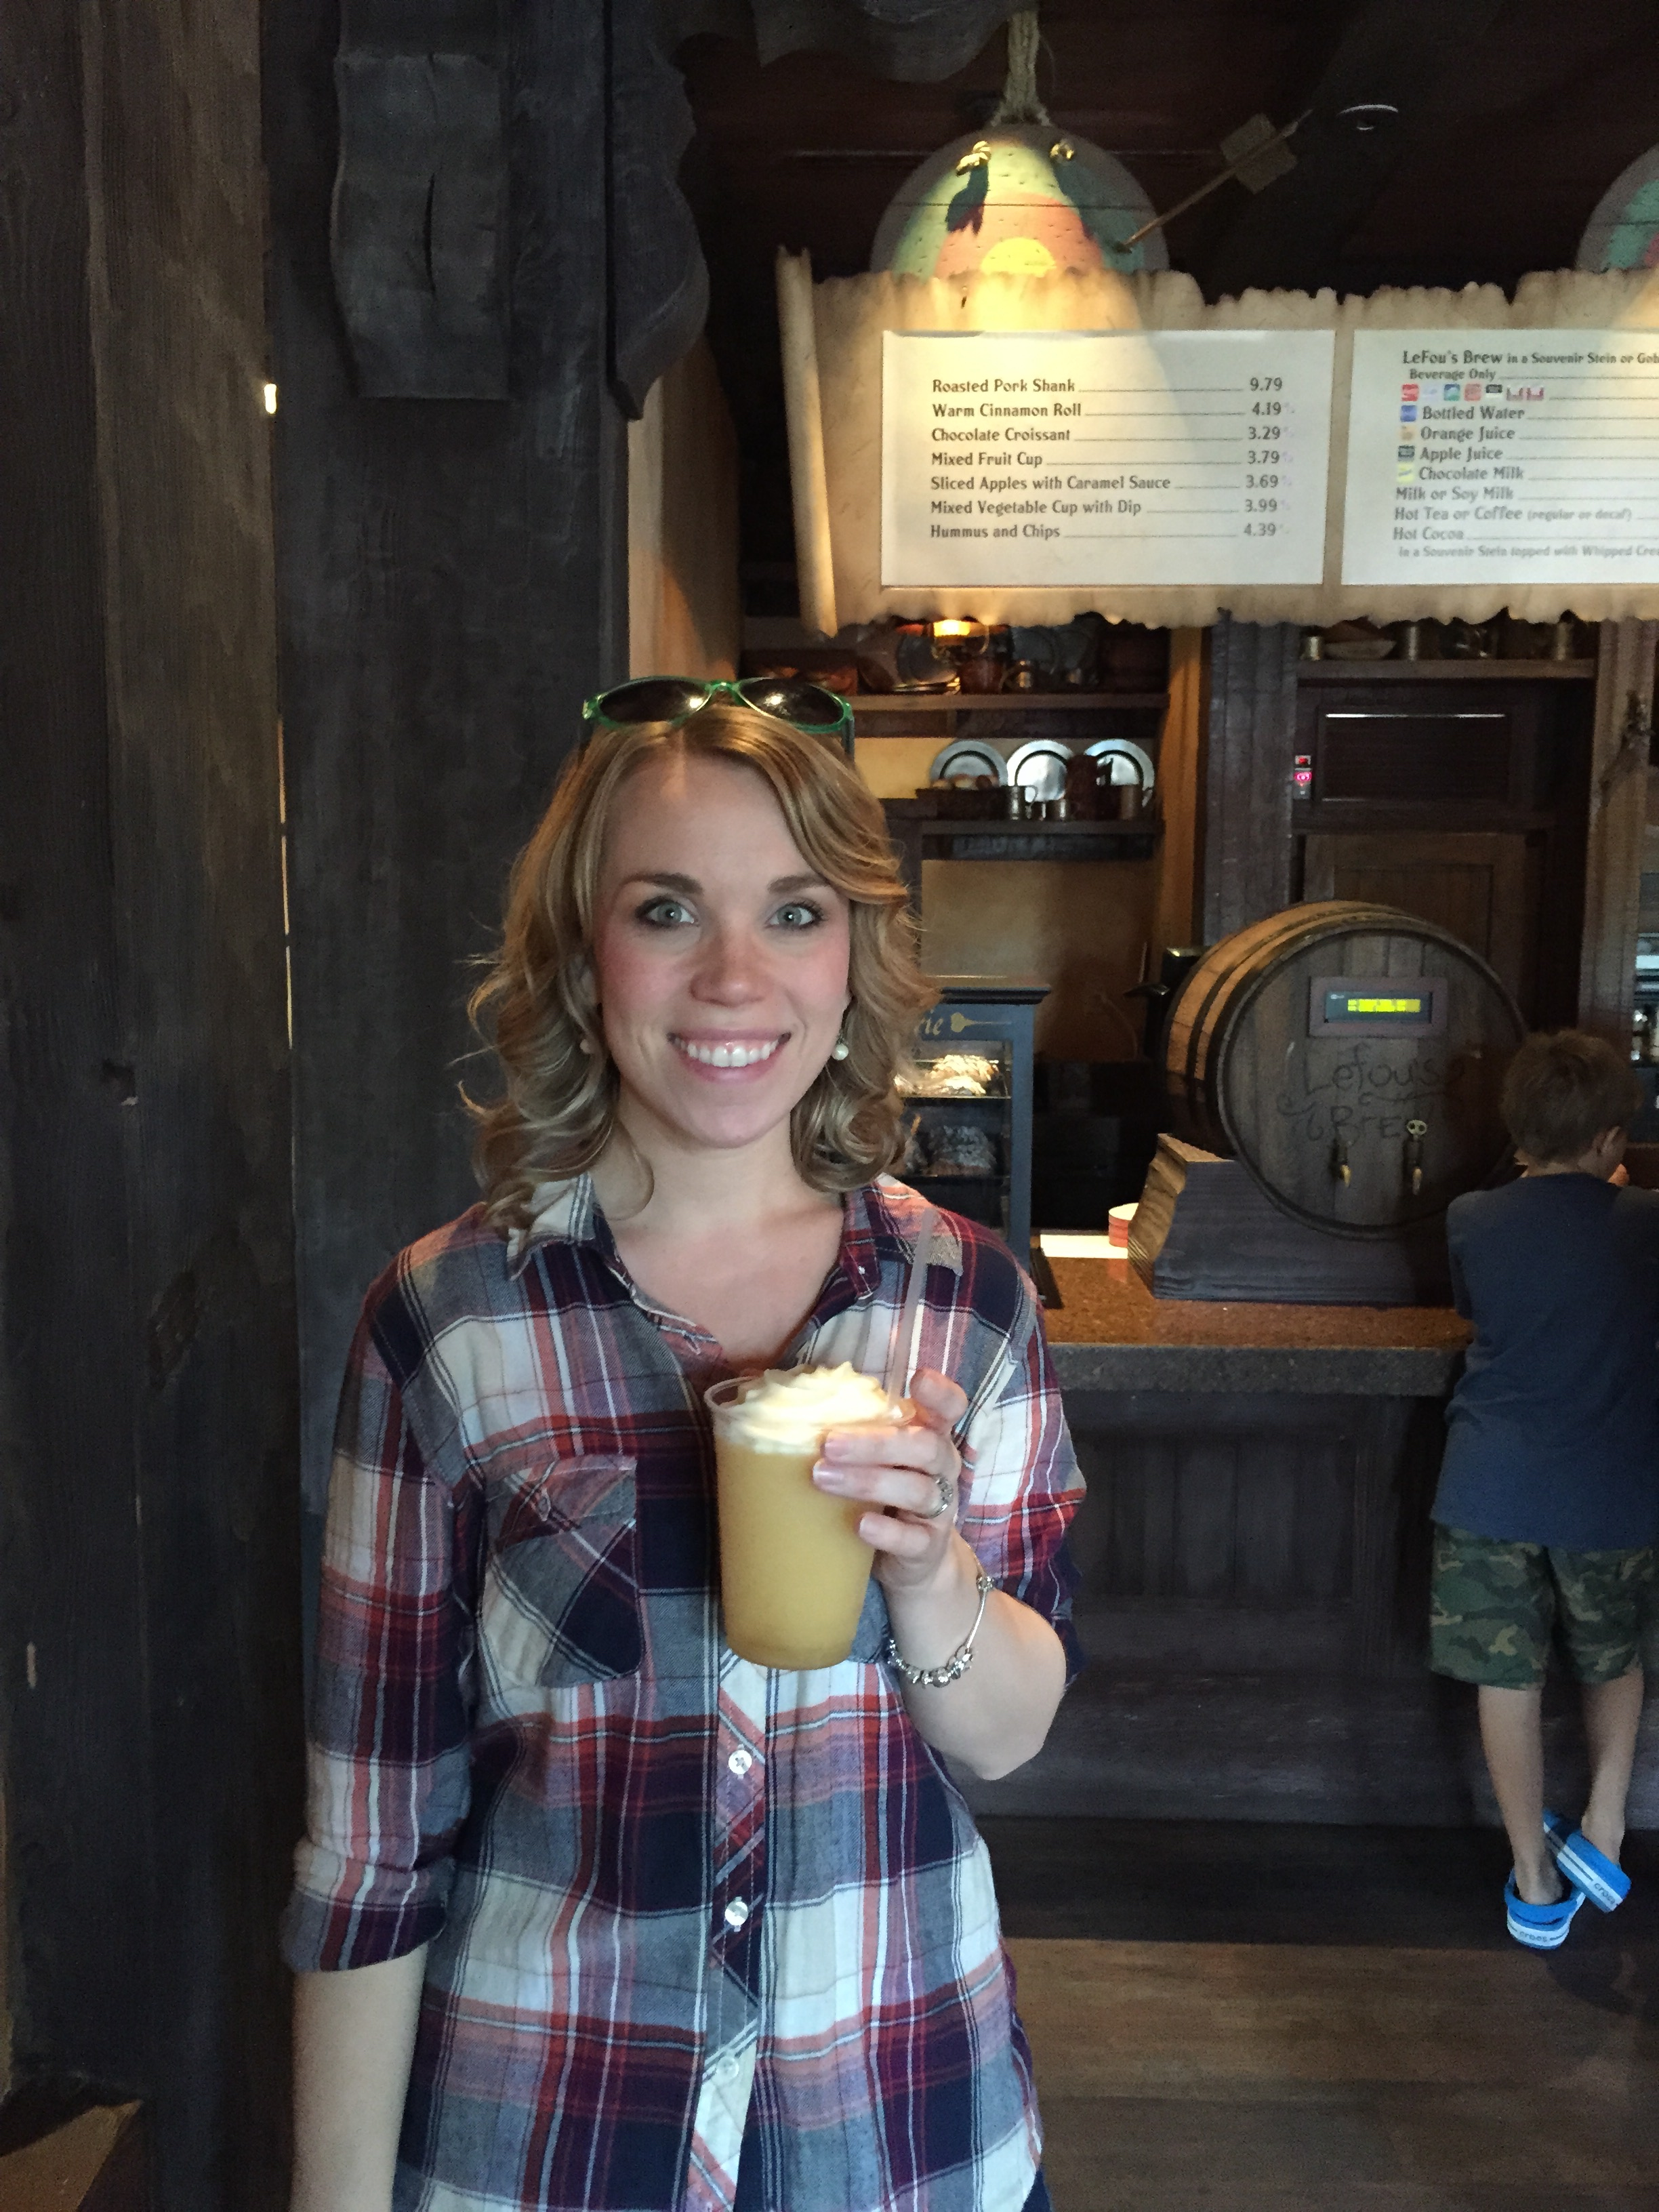 Enjoying LeFou's Brew at Gaston's Tavern! A frozen apple juice with mango cream topping!